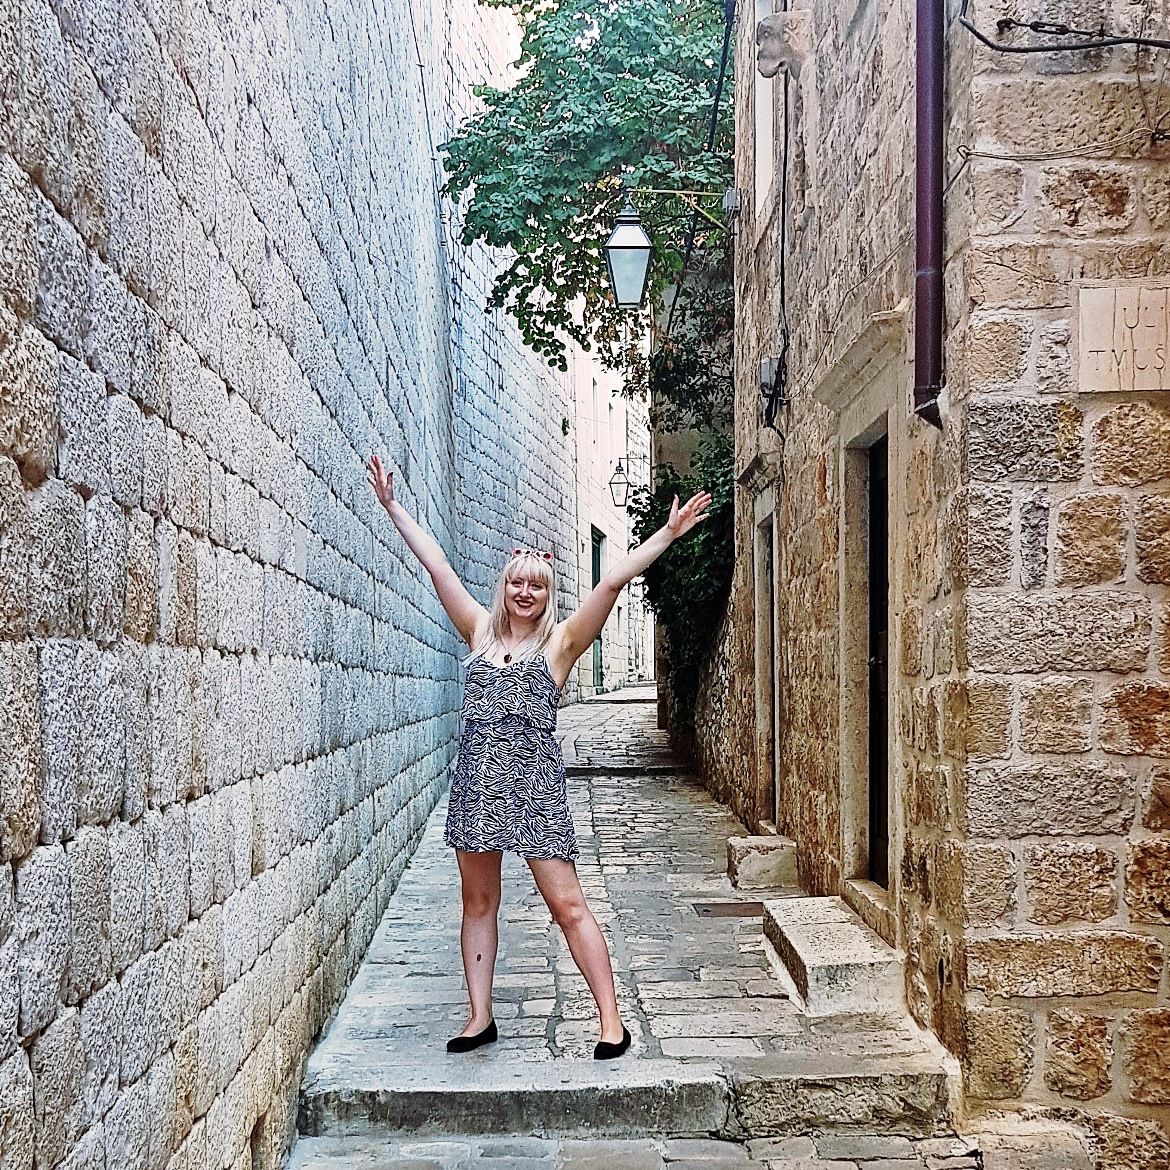 Dubrovnik alley ways - Croatia in Photographs by BeckyBecky Blogs